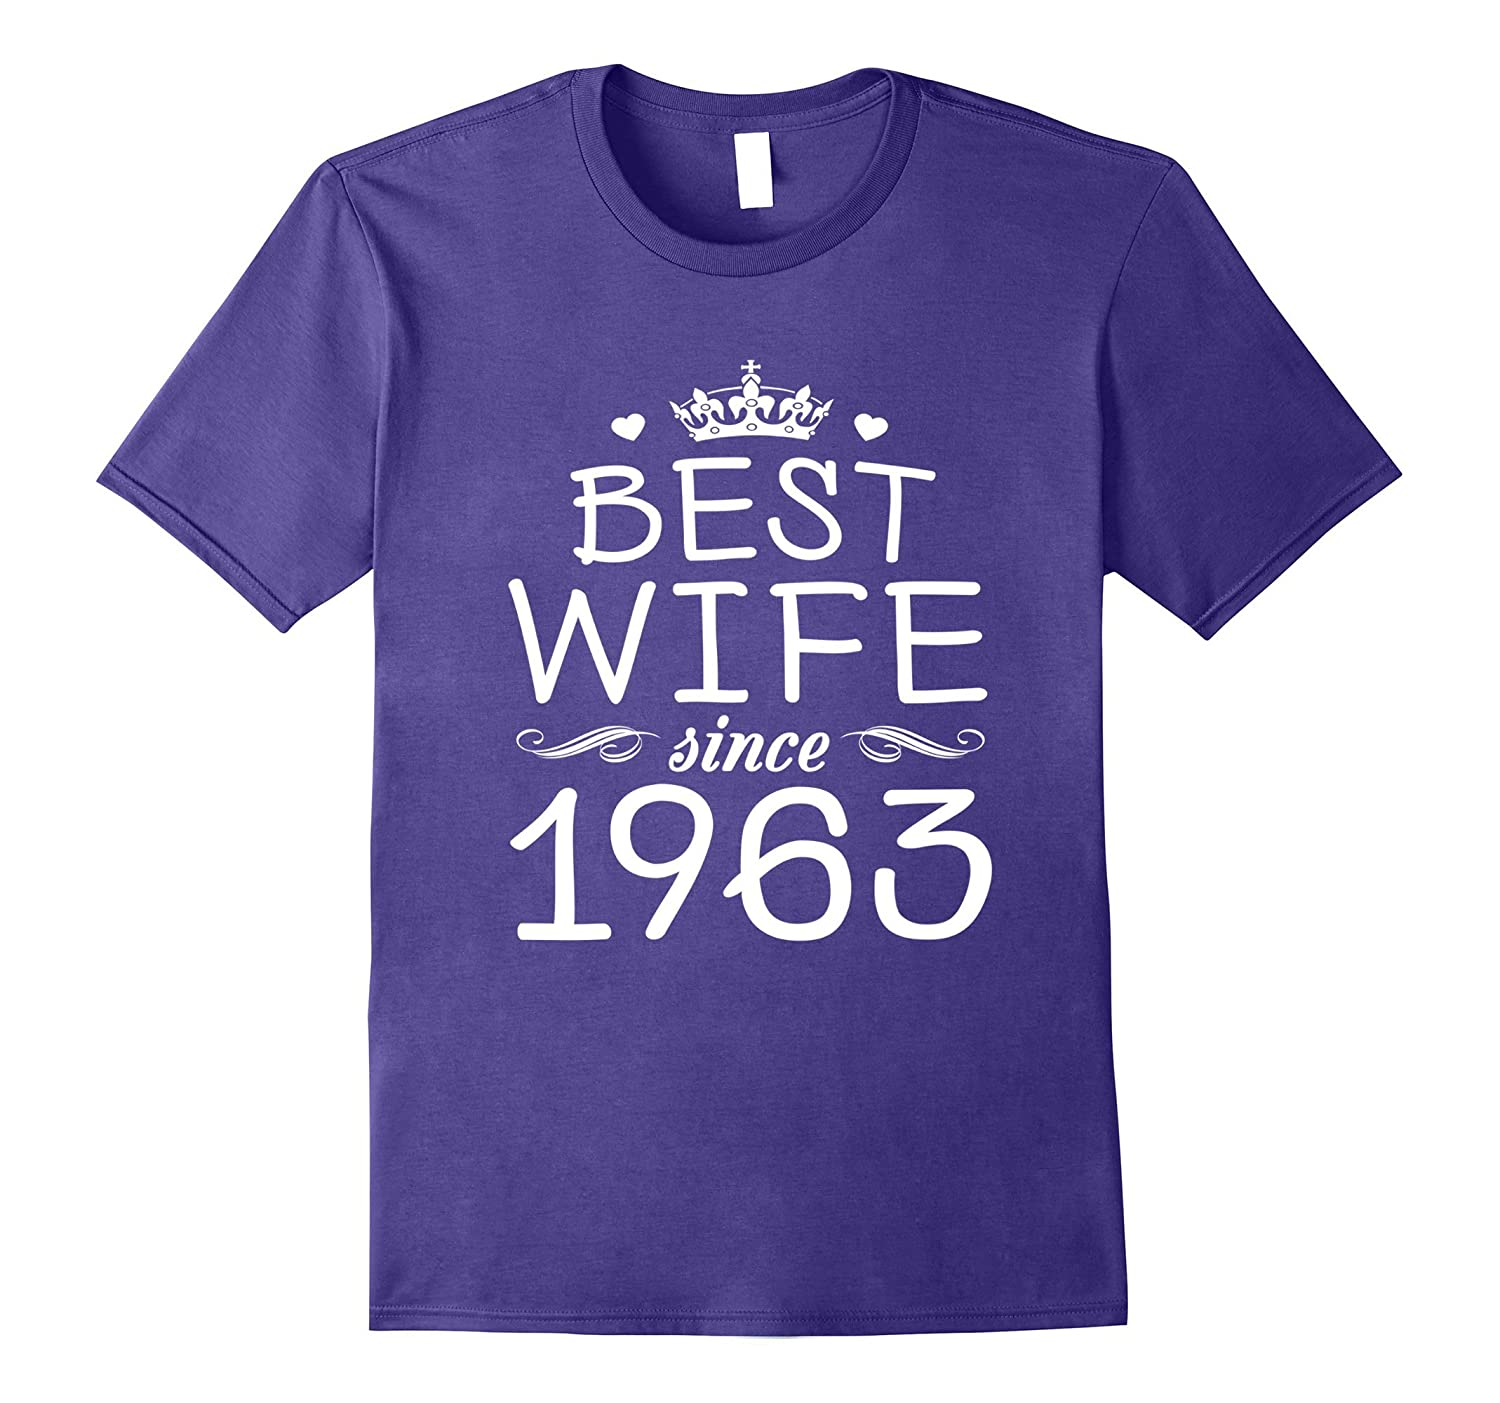 54th Wedding Anniversary Gift Ideas For Her-Wife Since 1963-PL